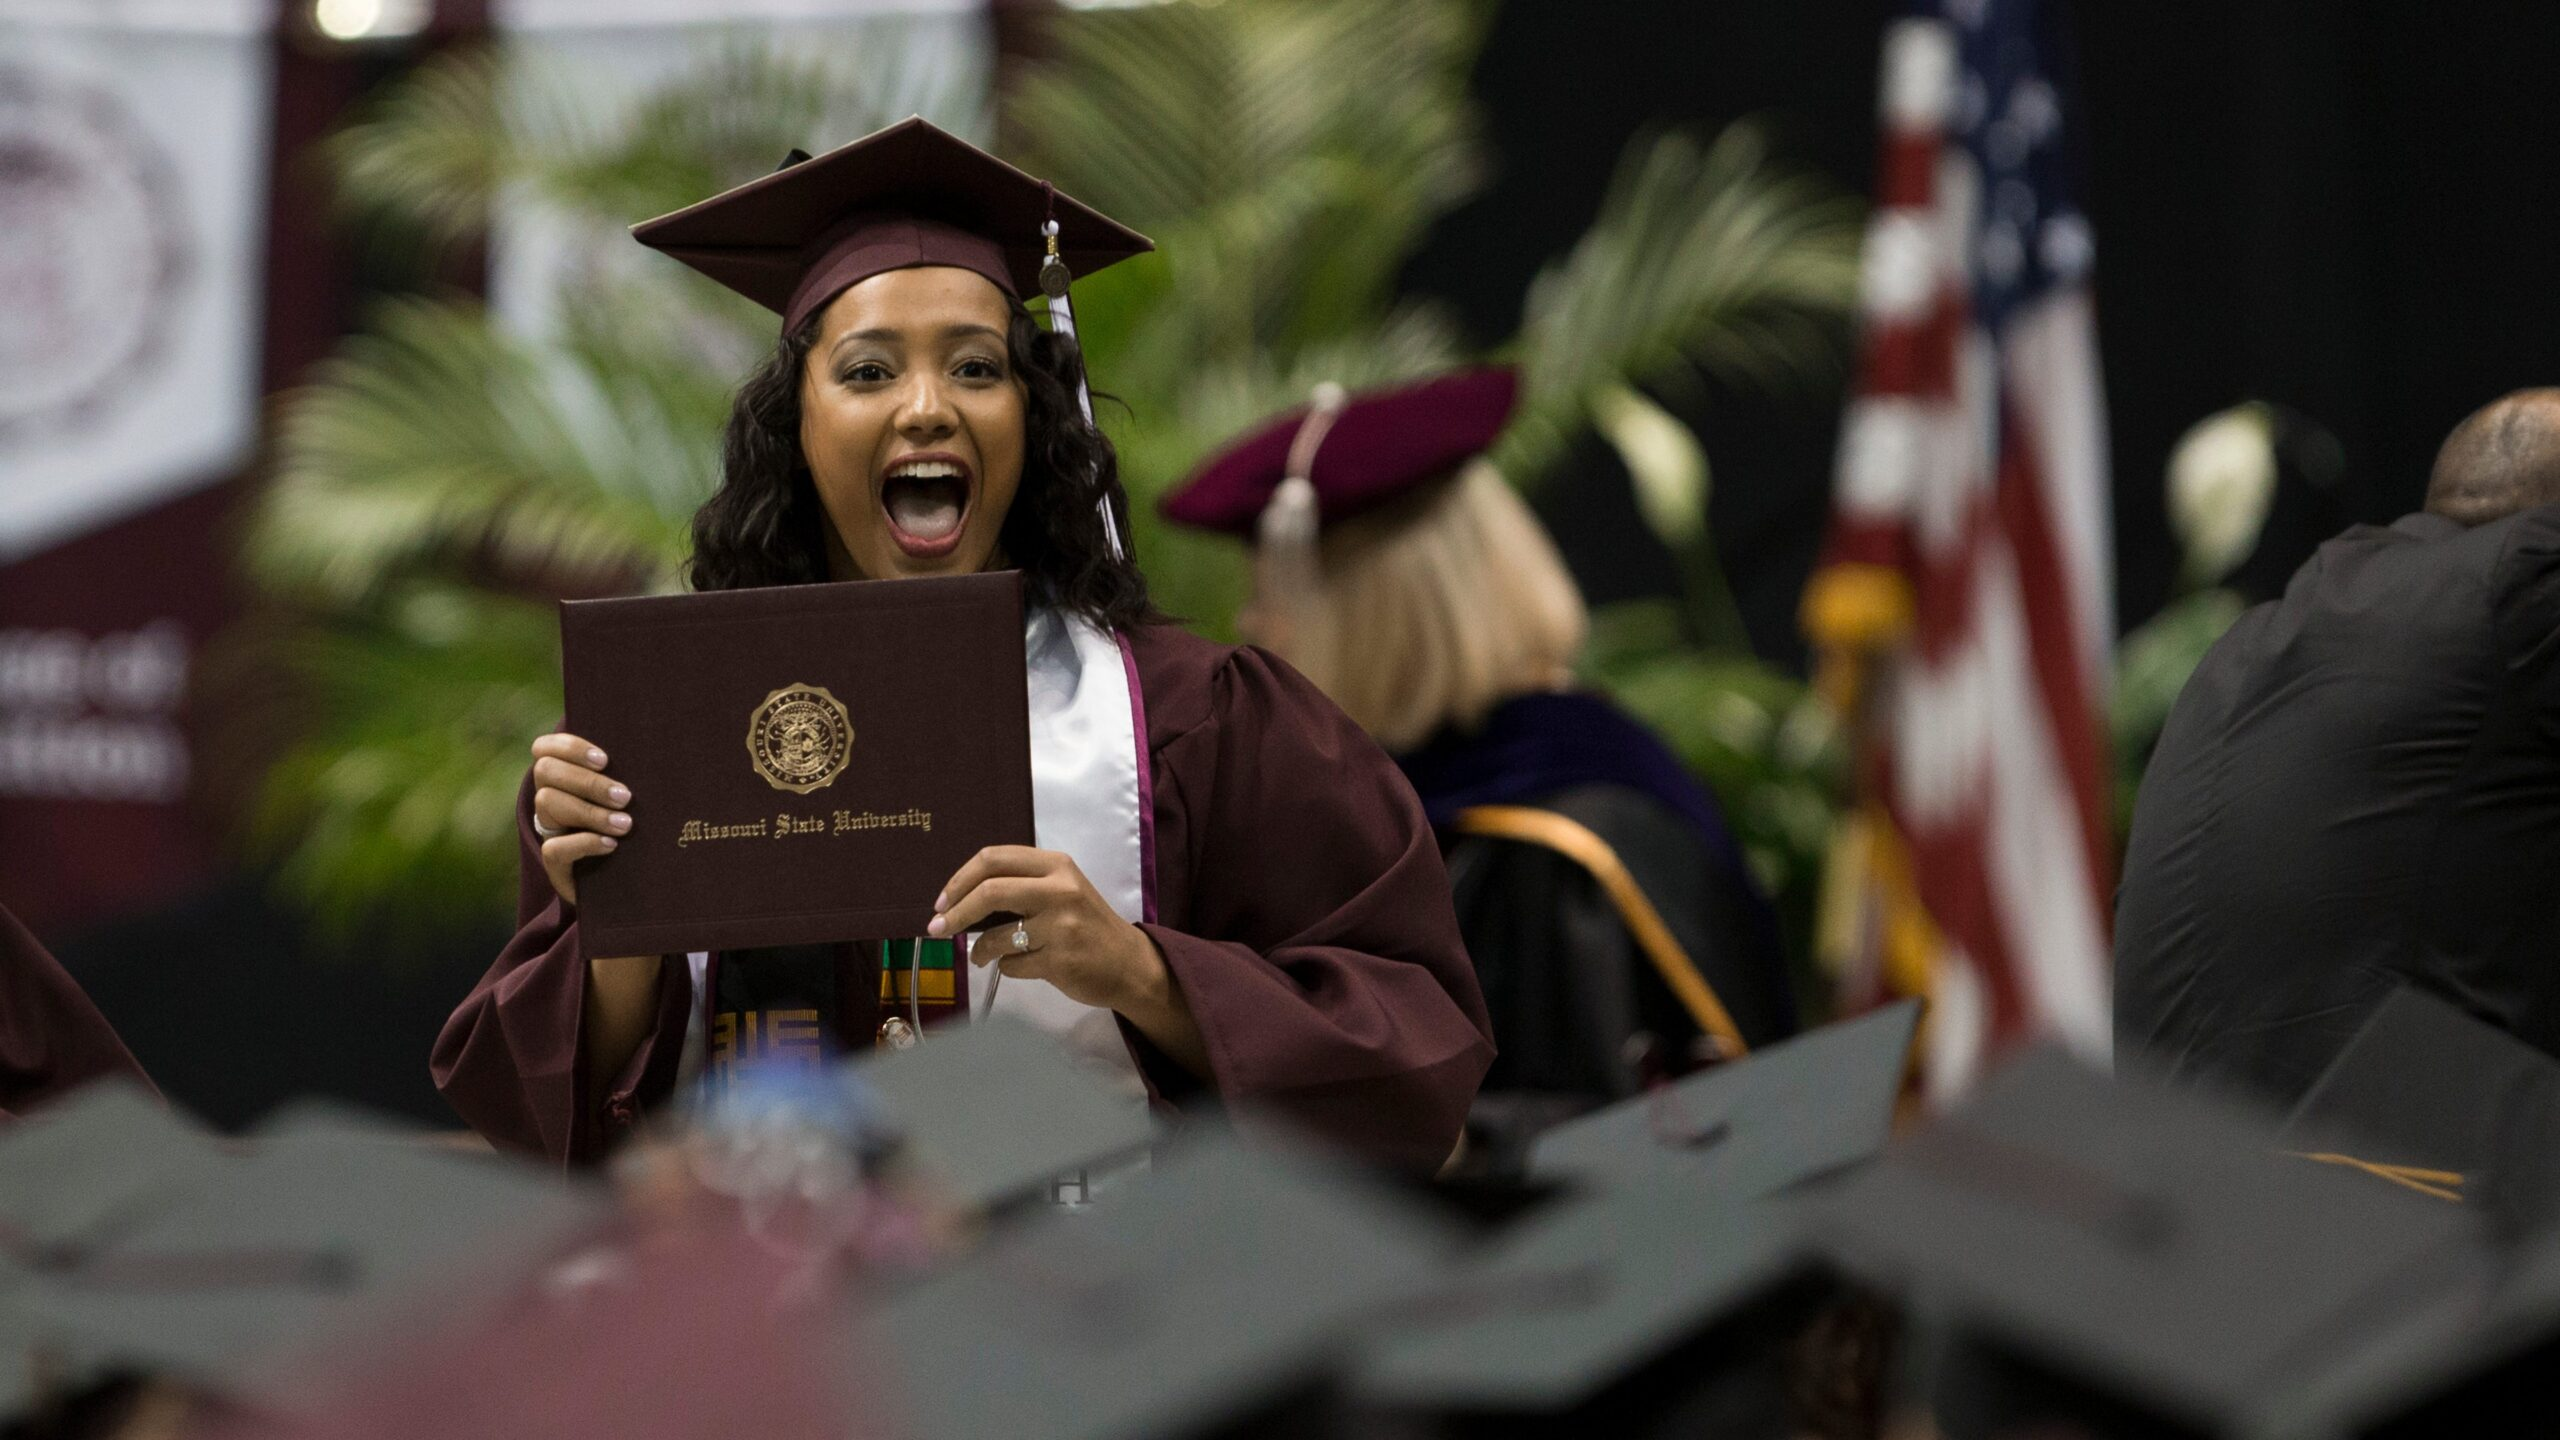 Among a sea of graduate hats, a woman holds her diploma excitedly.